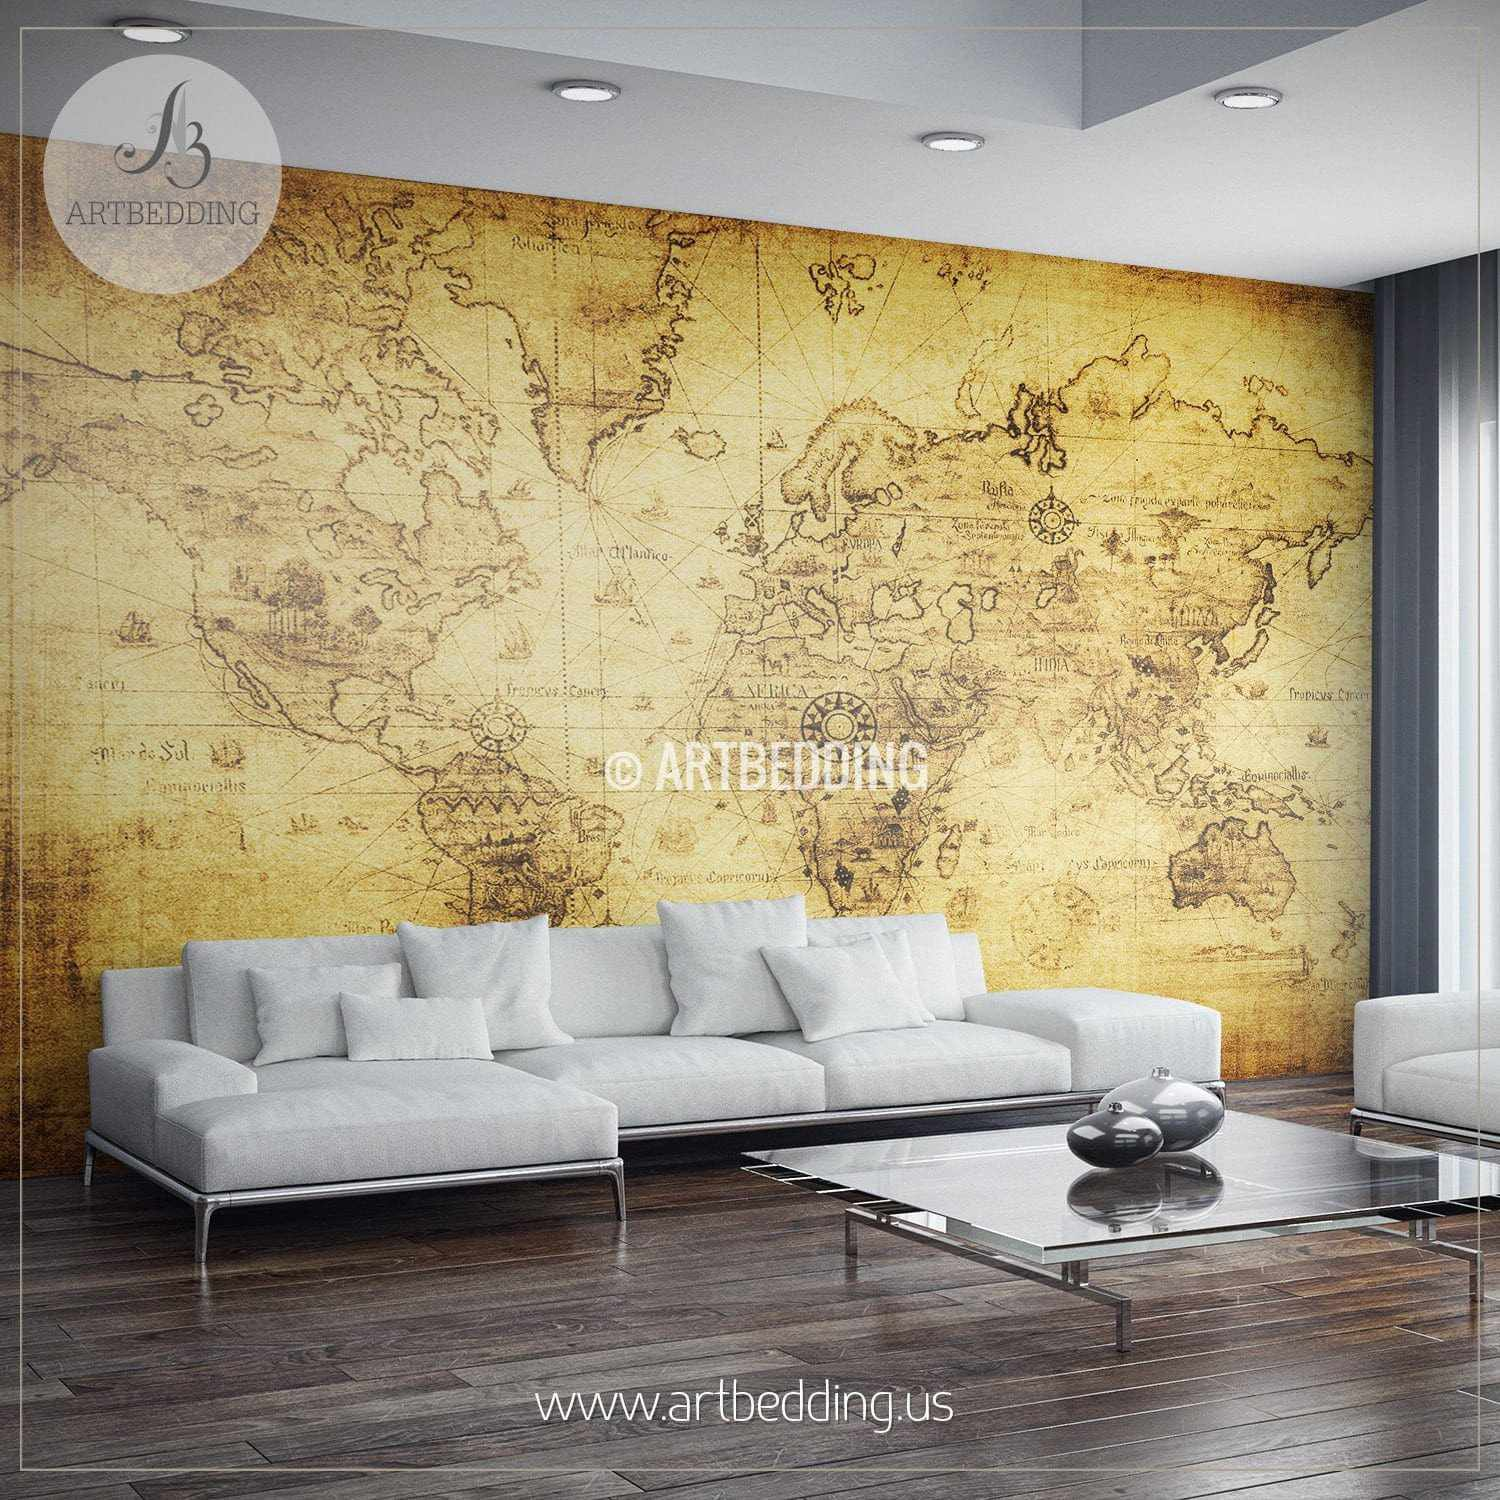 Vintage map wall mural self adhesive photo mural artbedding ancient world map wall mural self adhesive peel stick photo mural atlas wall gumiabroncs